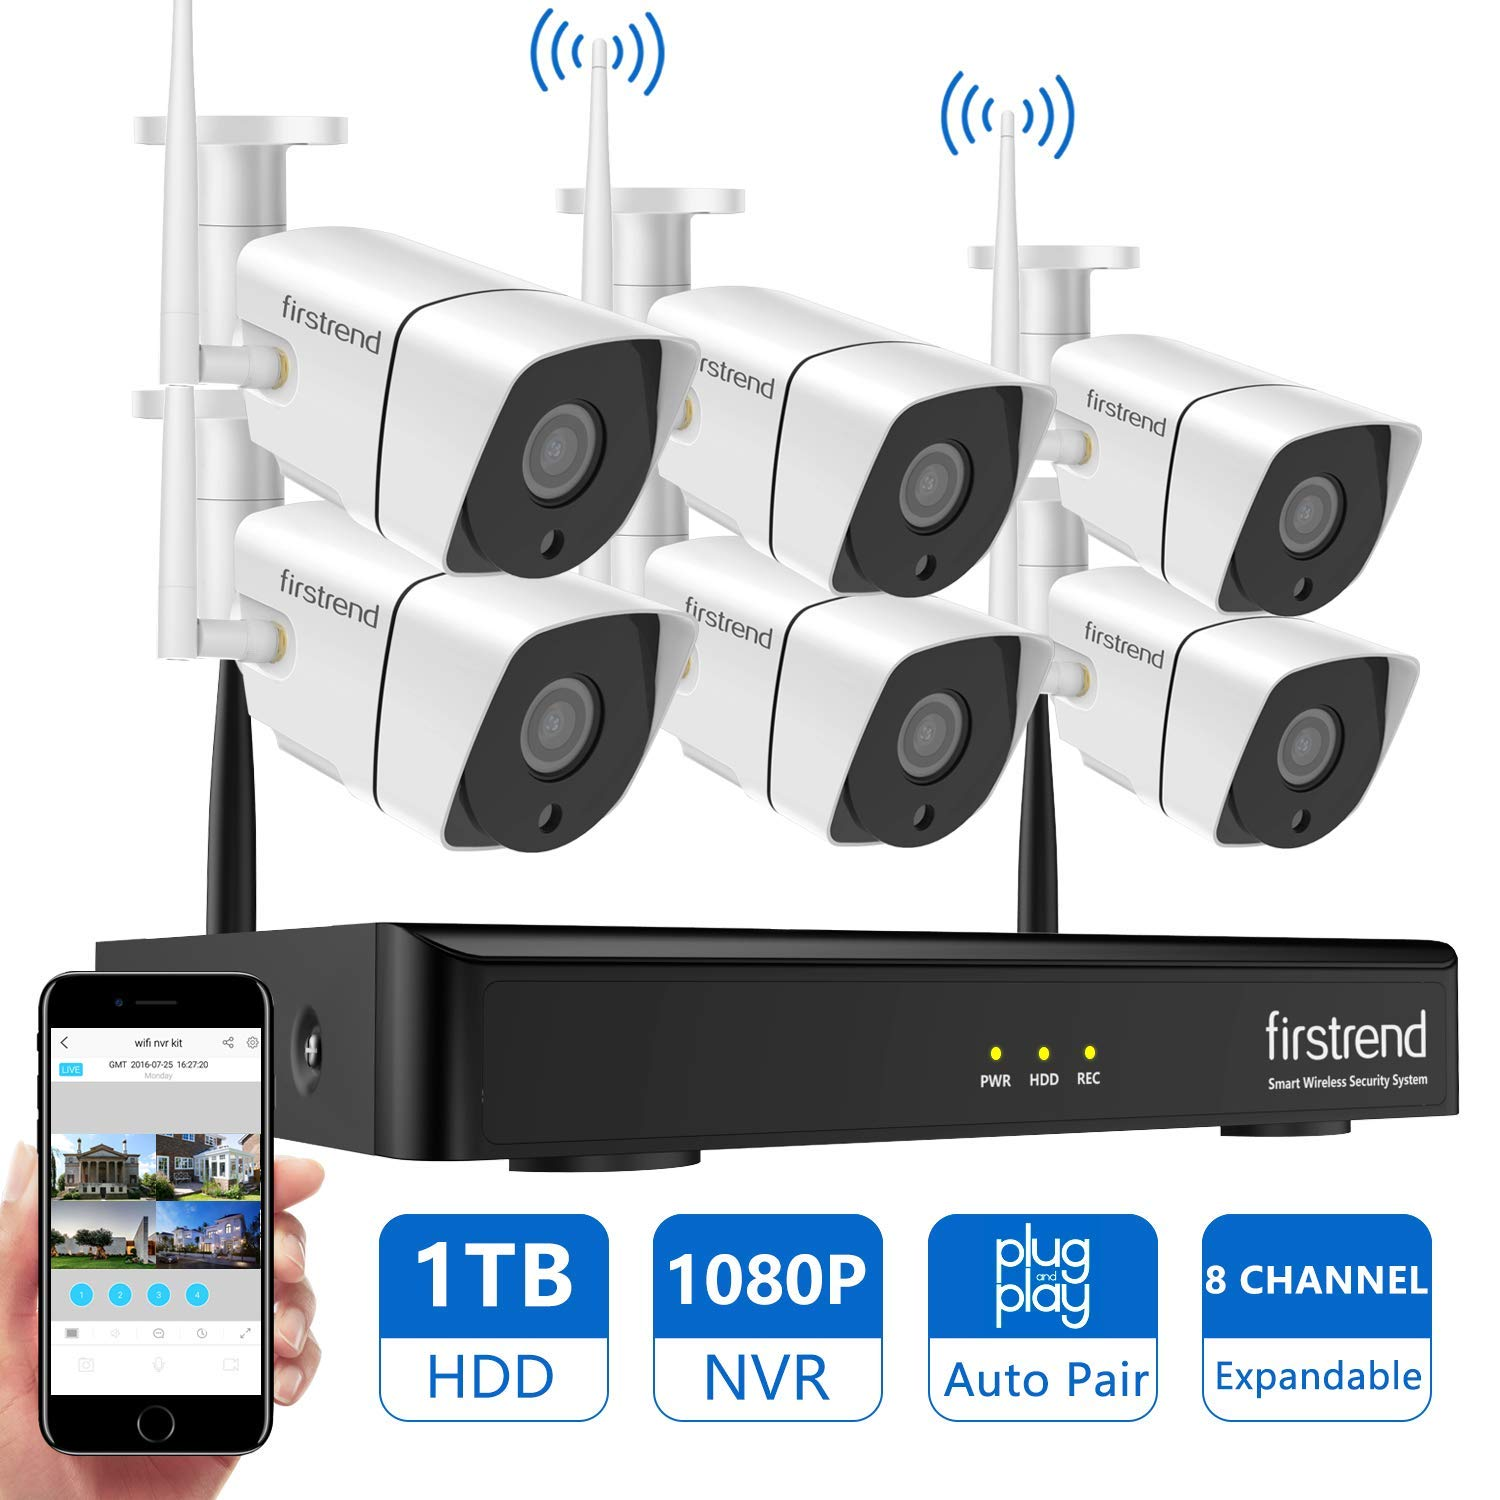 Newest Security Camera System Wireless, Firstrend 8CH 1080P Wireless Surveillance NVR System and Easy Remote Home Monitoring Systems with 6pcs 1MP Video Home Security Cameras 1TB Hard Drive Installed